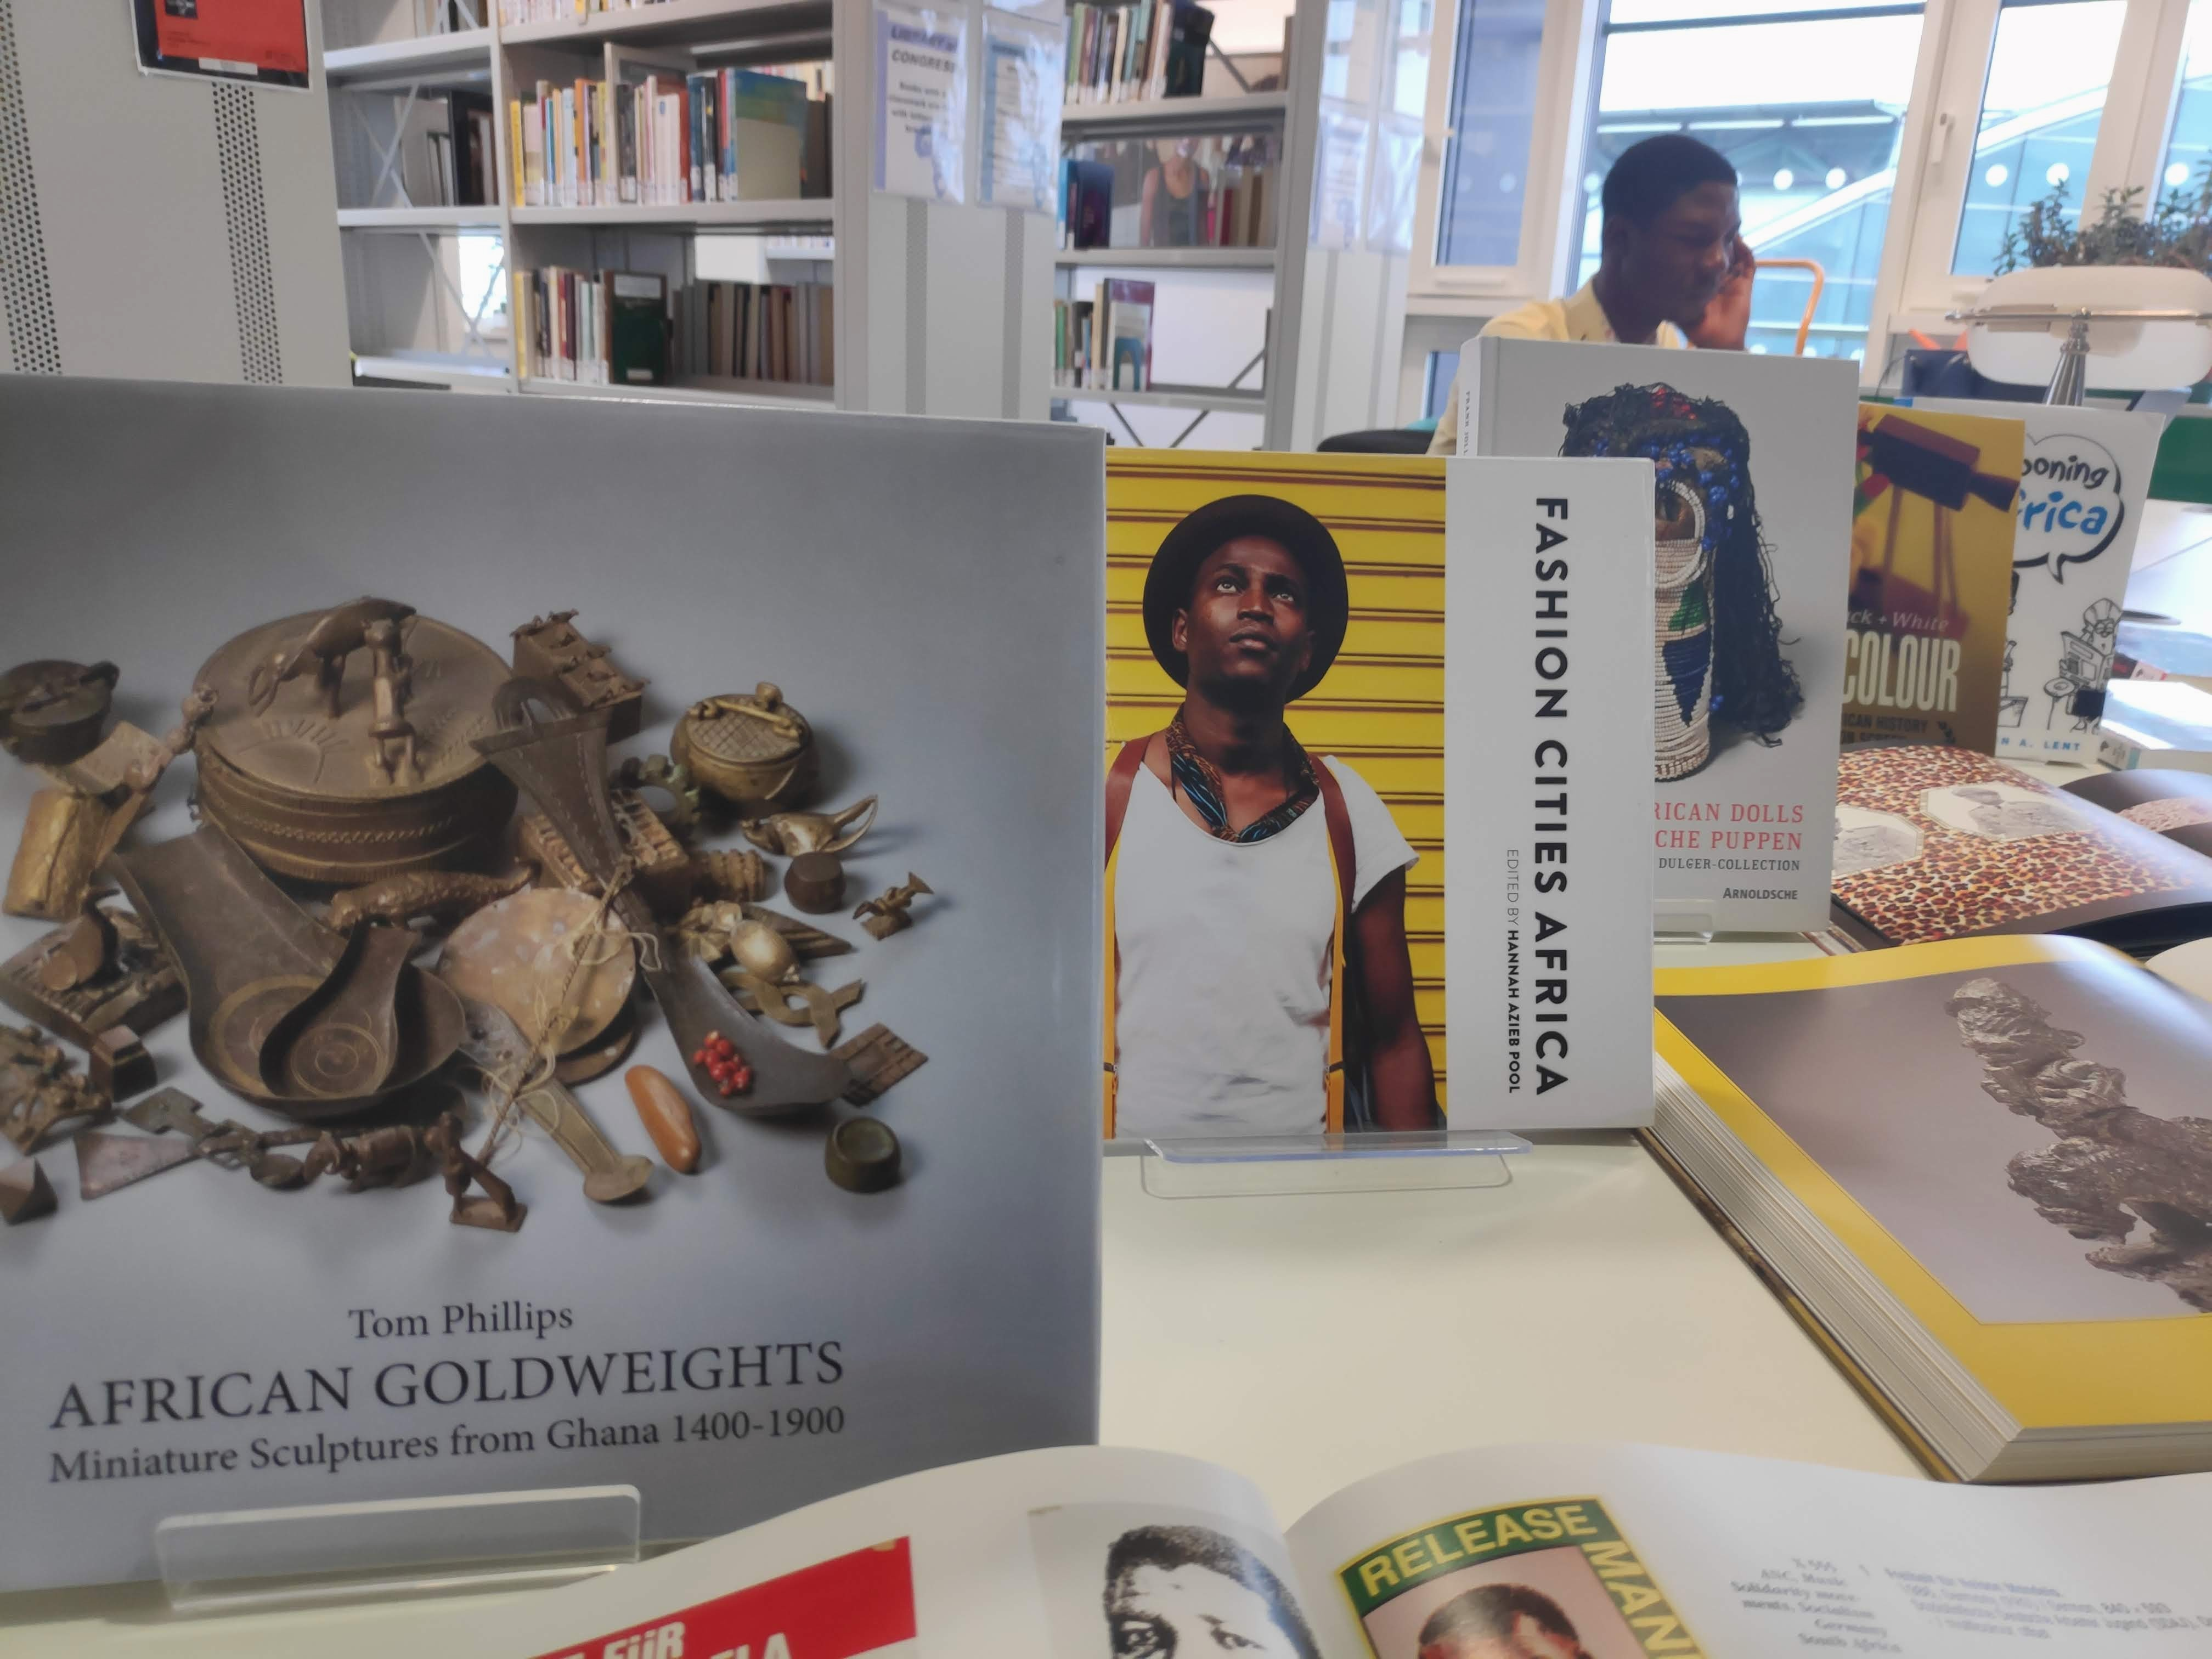 Black History Month display with storyteller, African Studies Library